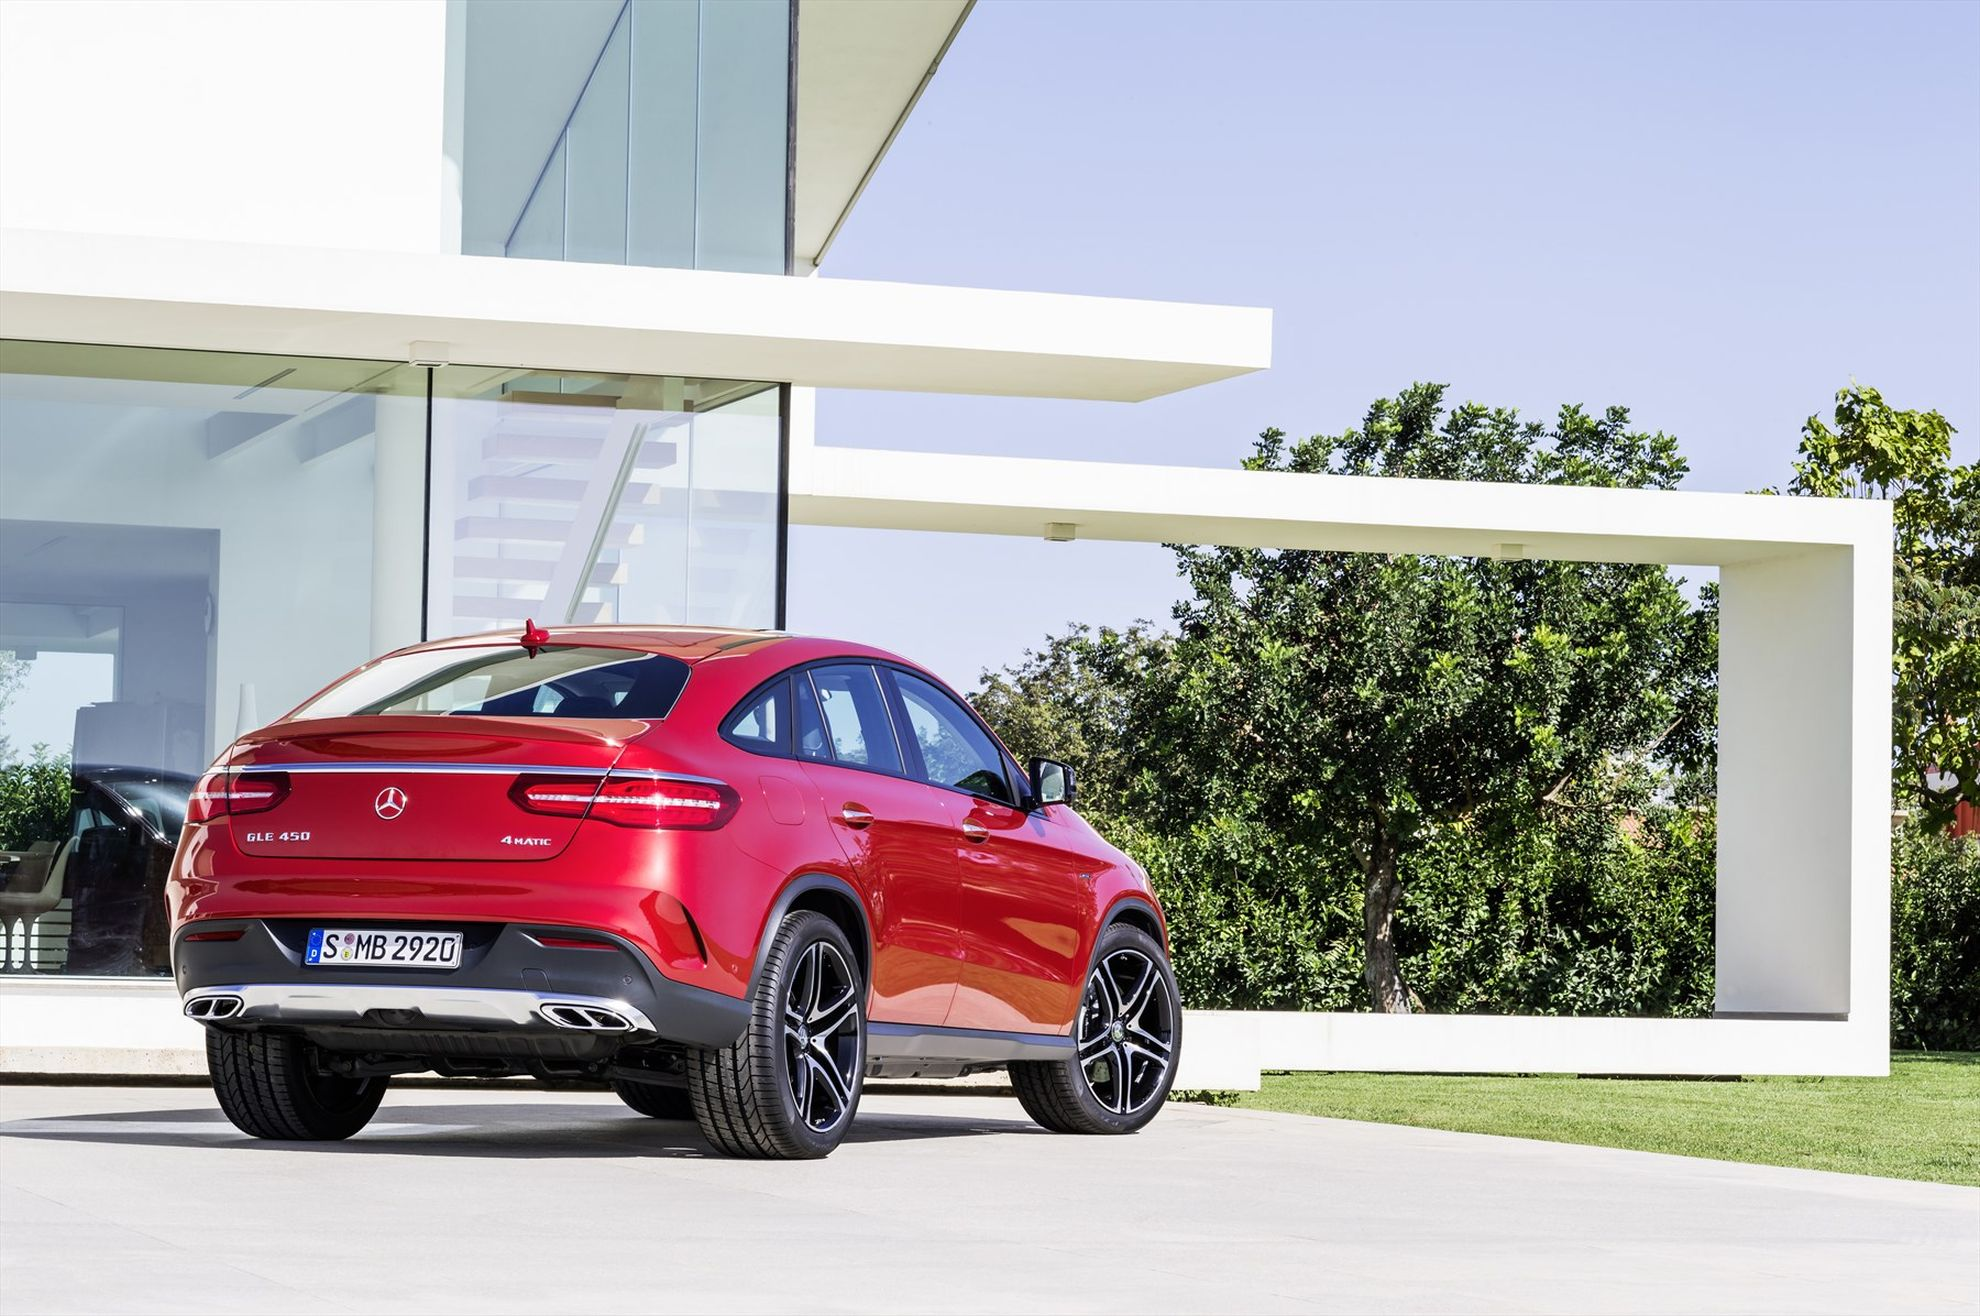 gle-450-amg-coupe-rear